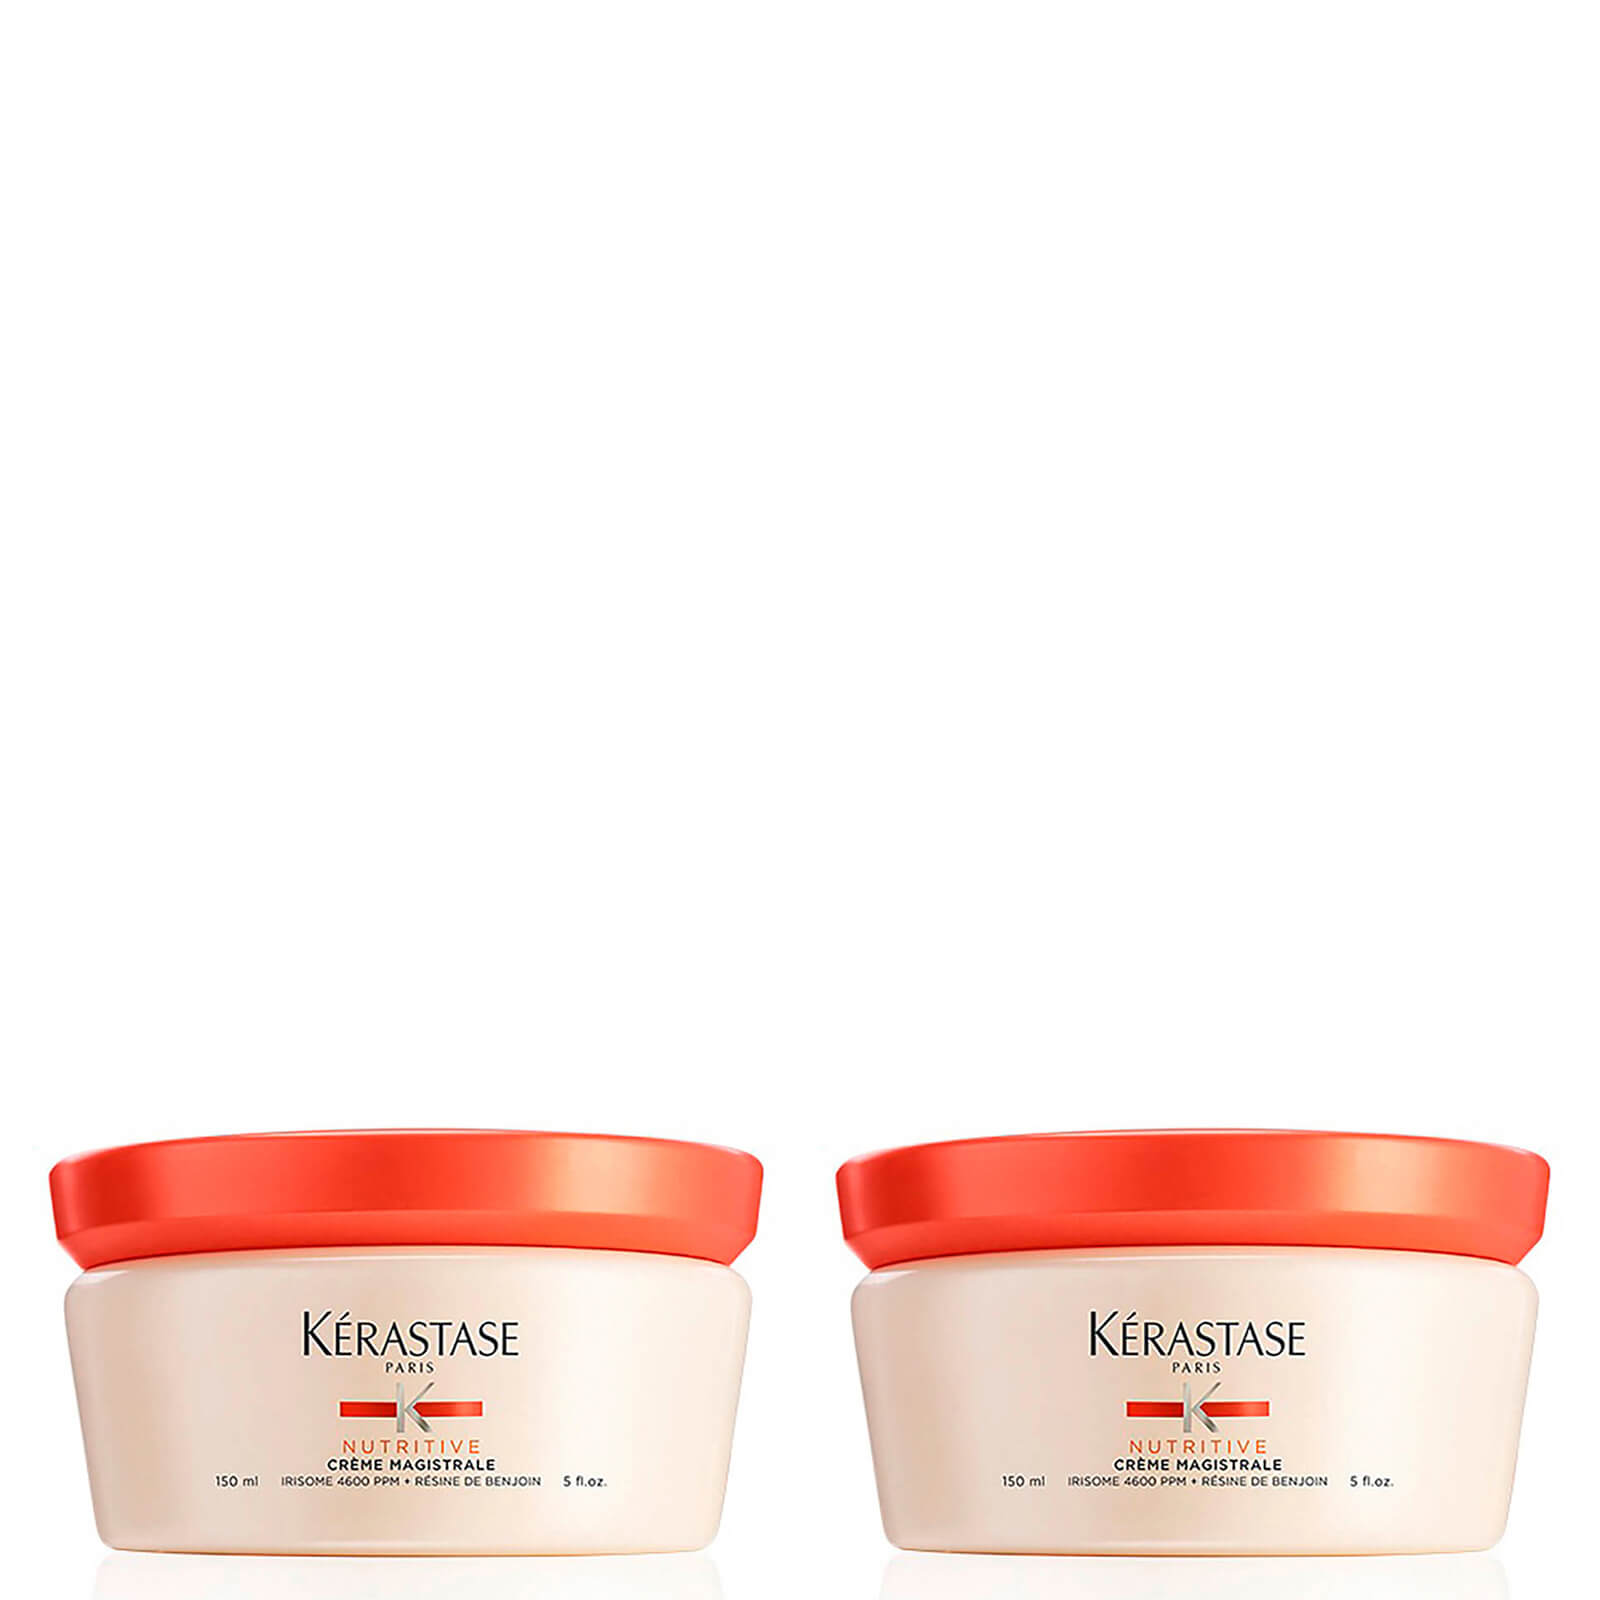 Kérastase Nutritive Creme Magistral 150ml Duo